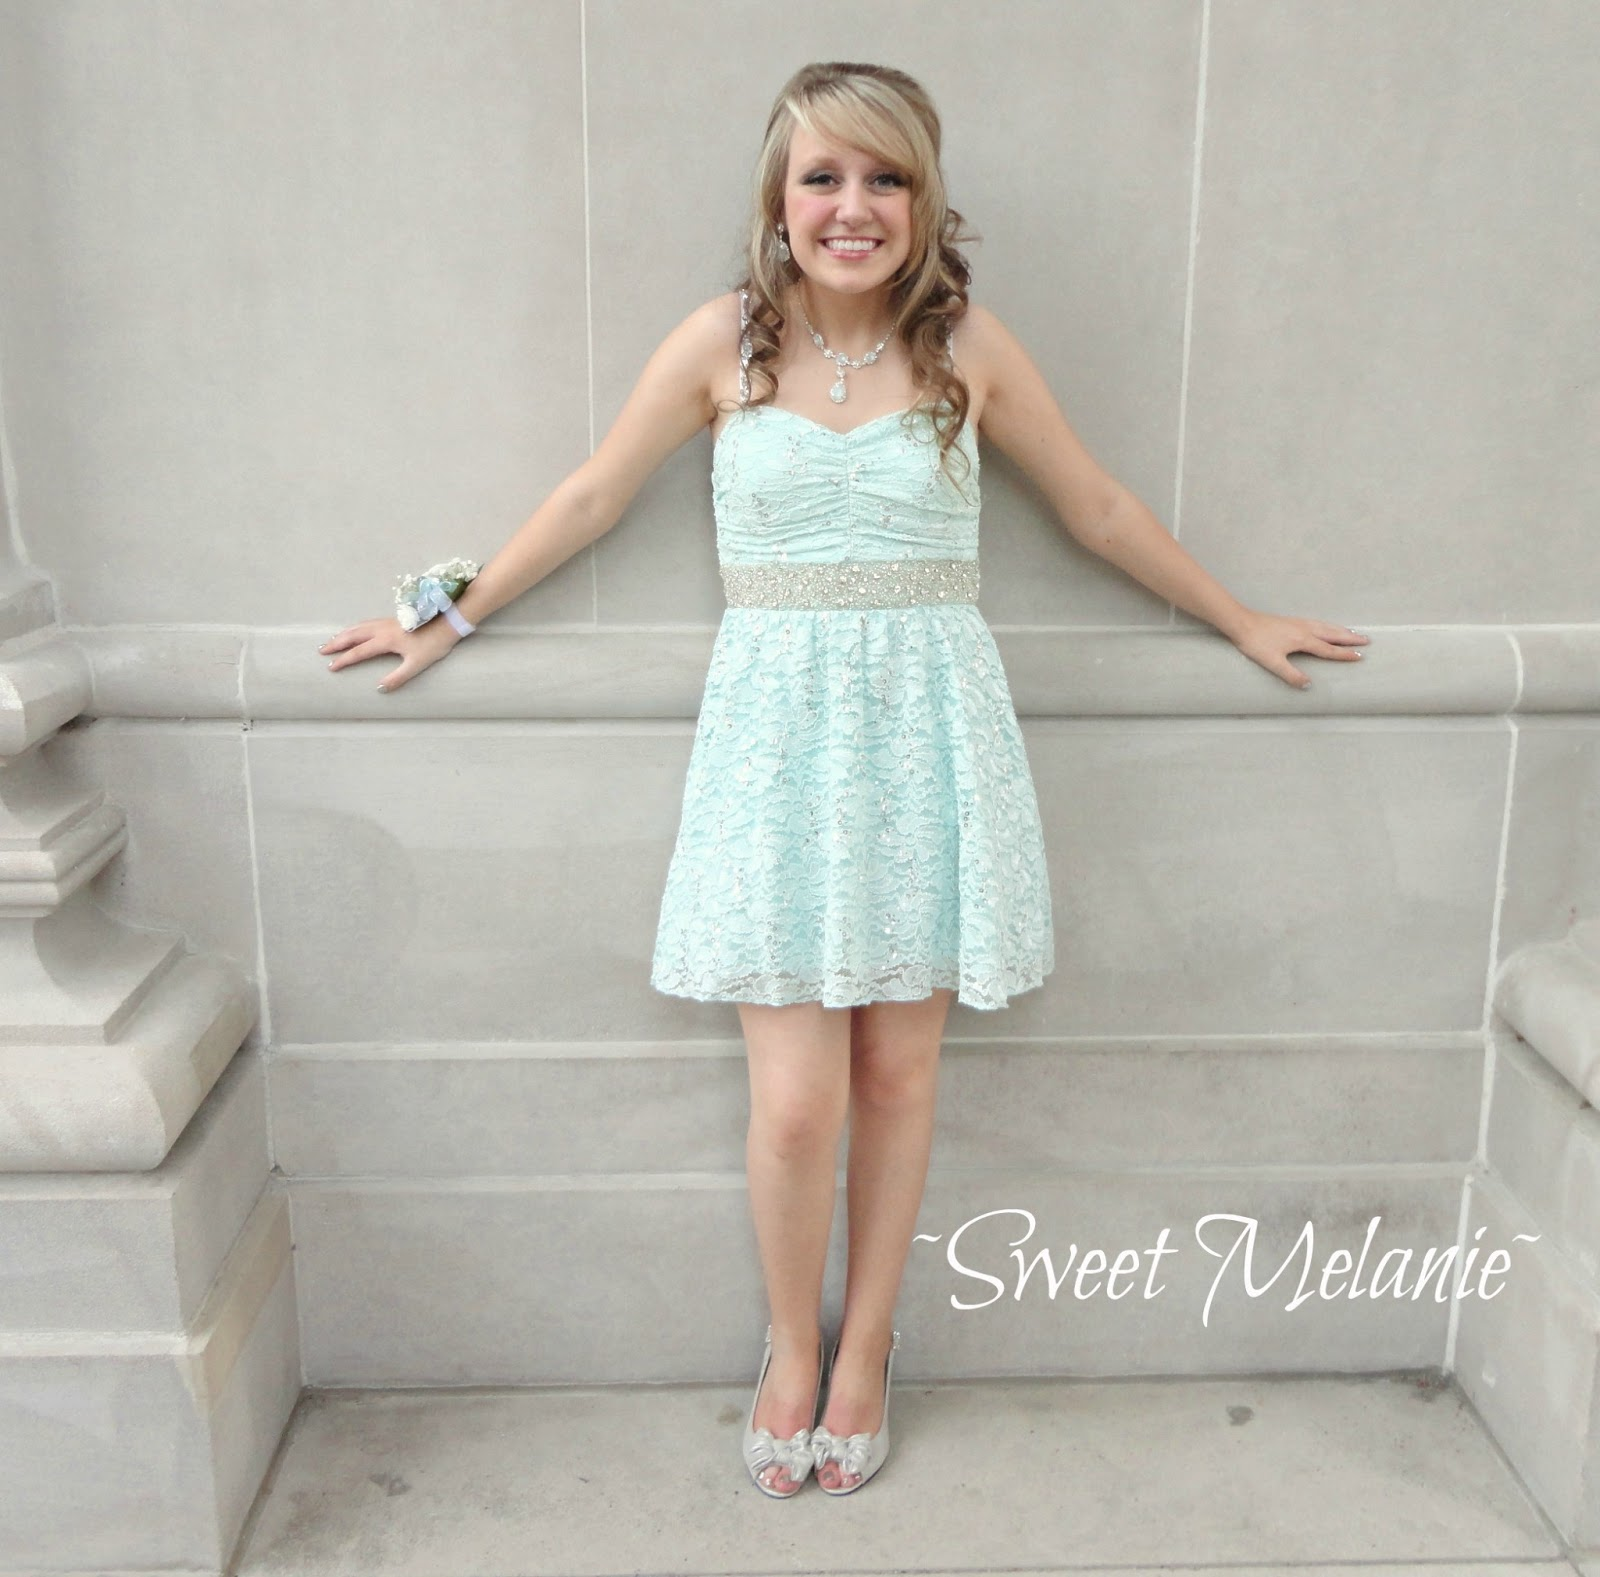 Formal Dresses For Middle School Dance - Holiday Dresses